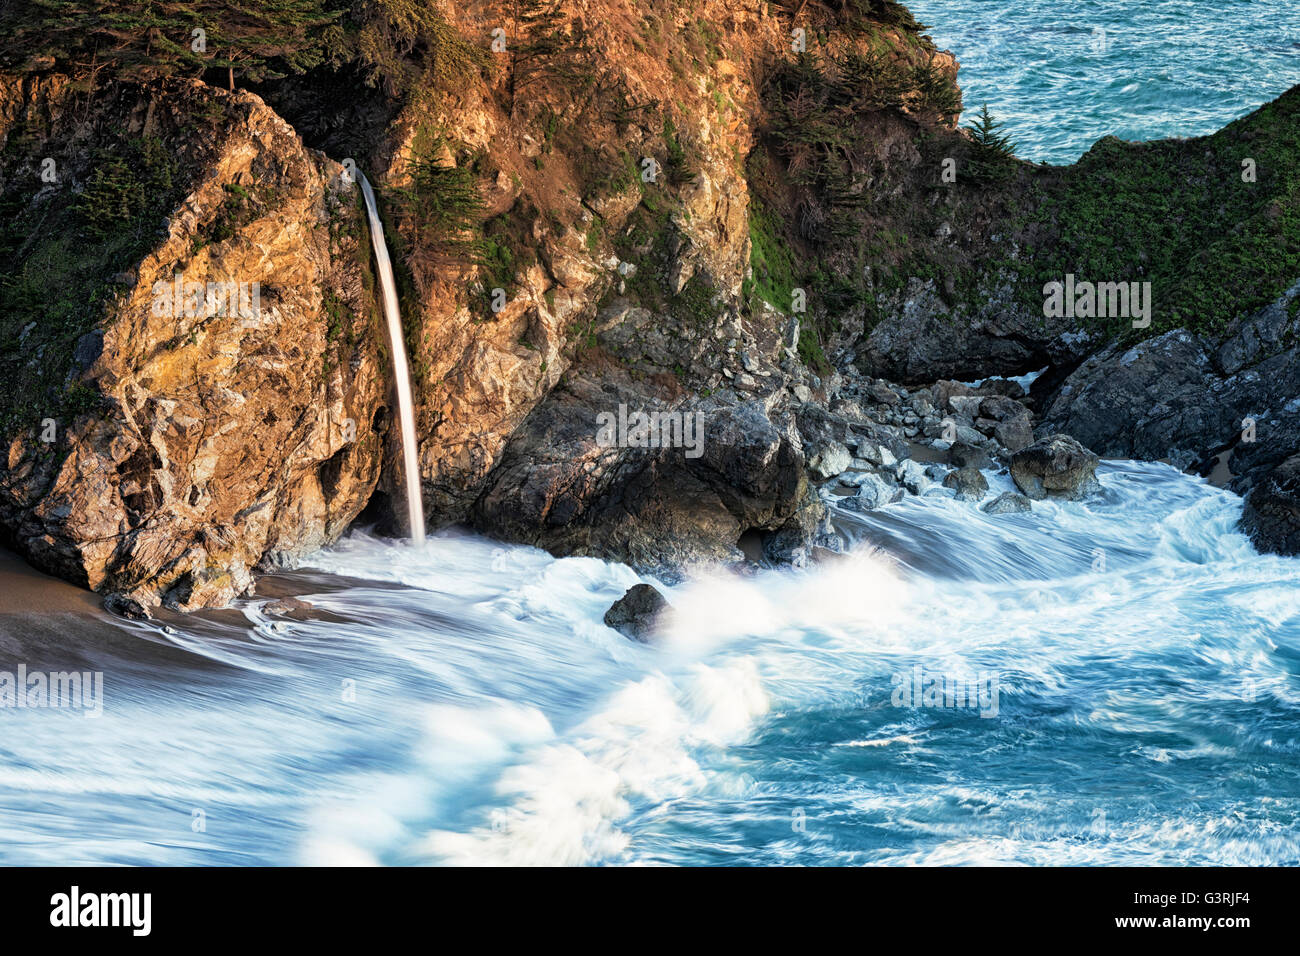 Evening light bathes Julia Pfeiffer Burns State Park as McWay Falls pours into the Pacific Ocean along California's - Stock Image